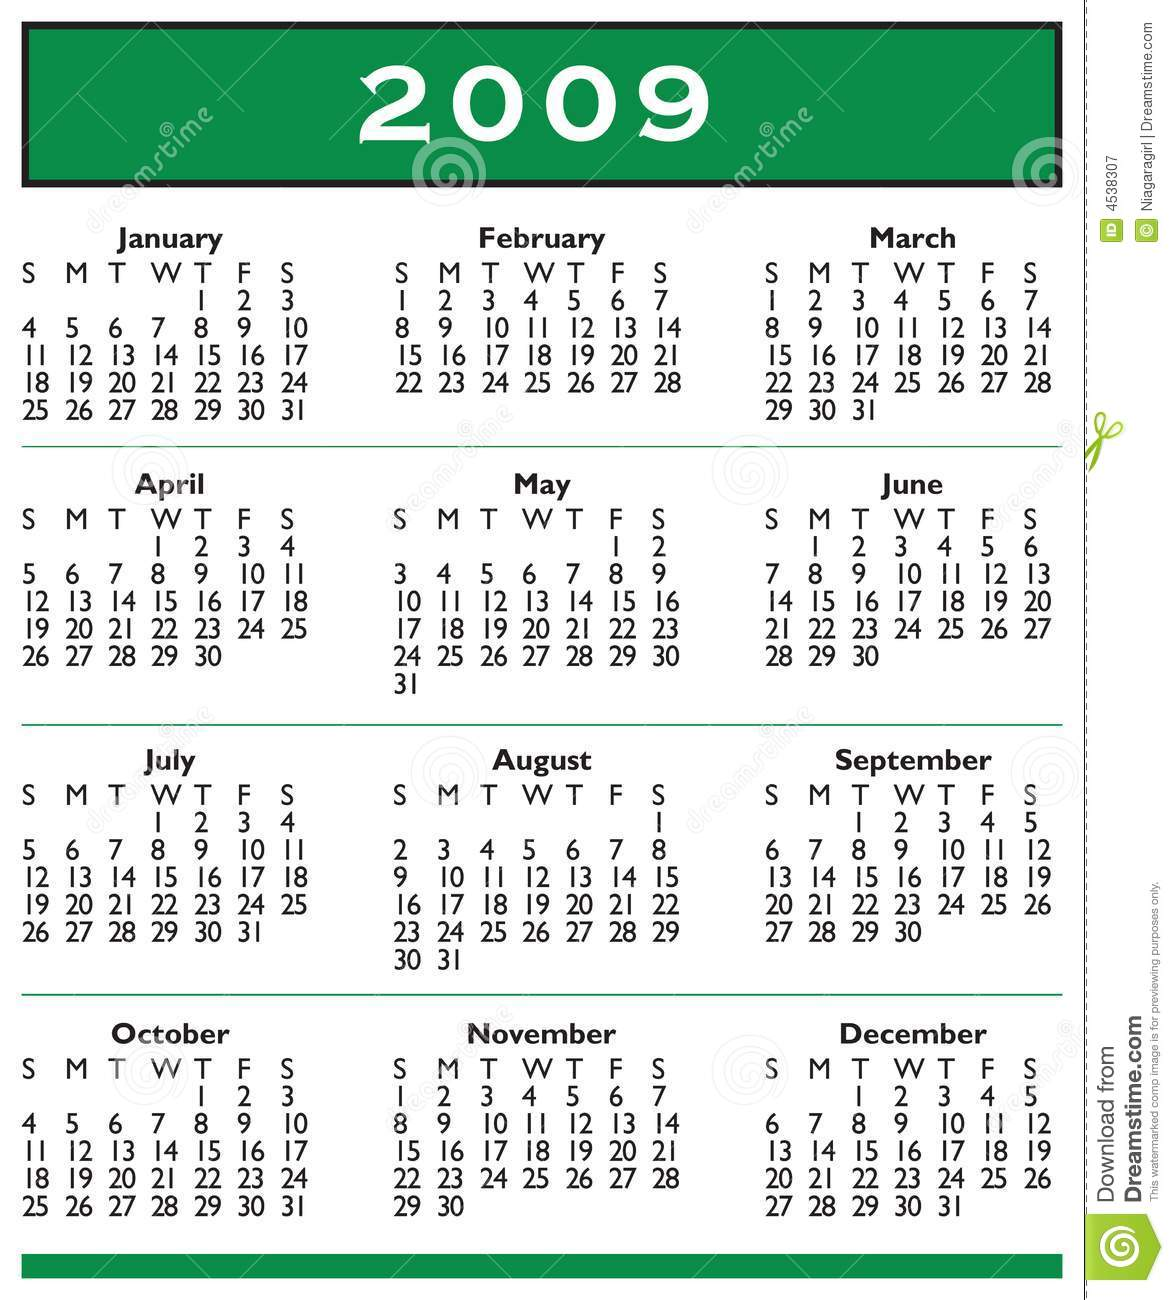 What happened in 2009 inc. Pop culture, prices and events.